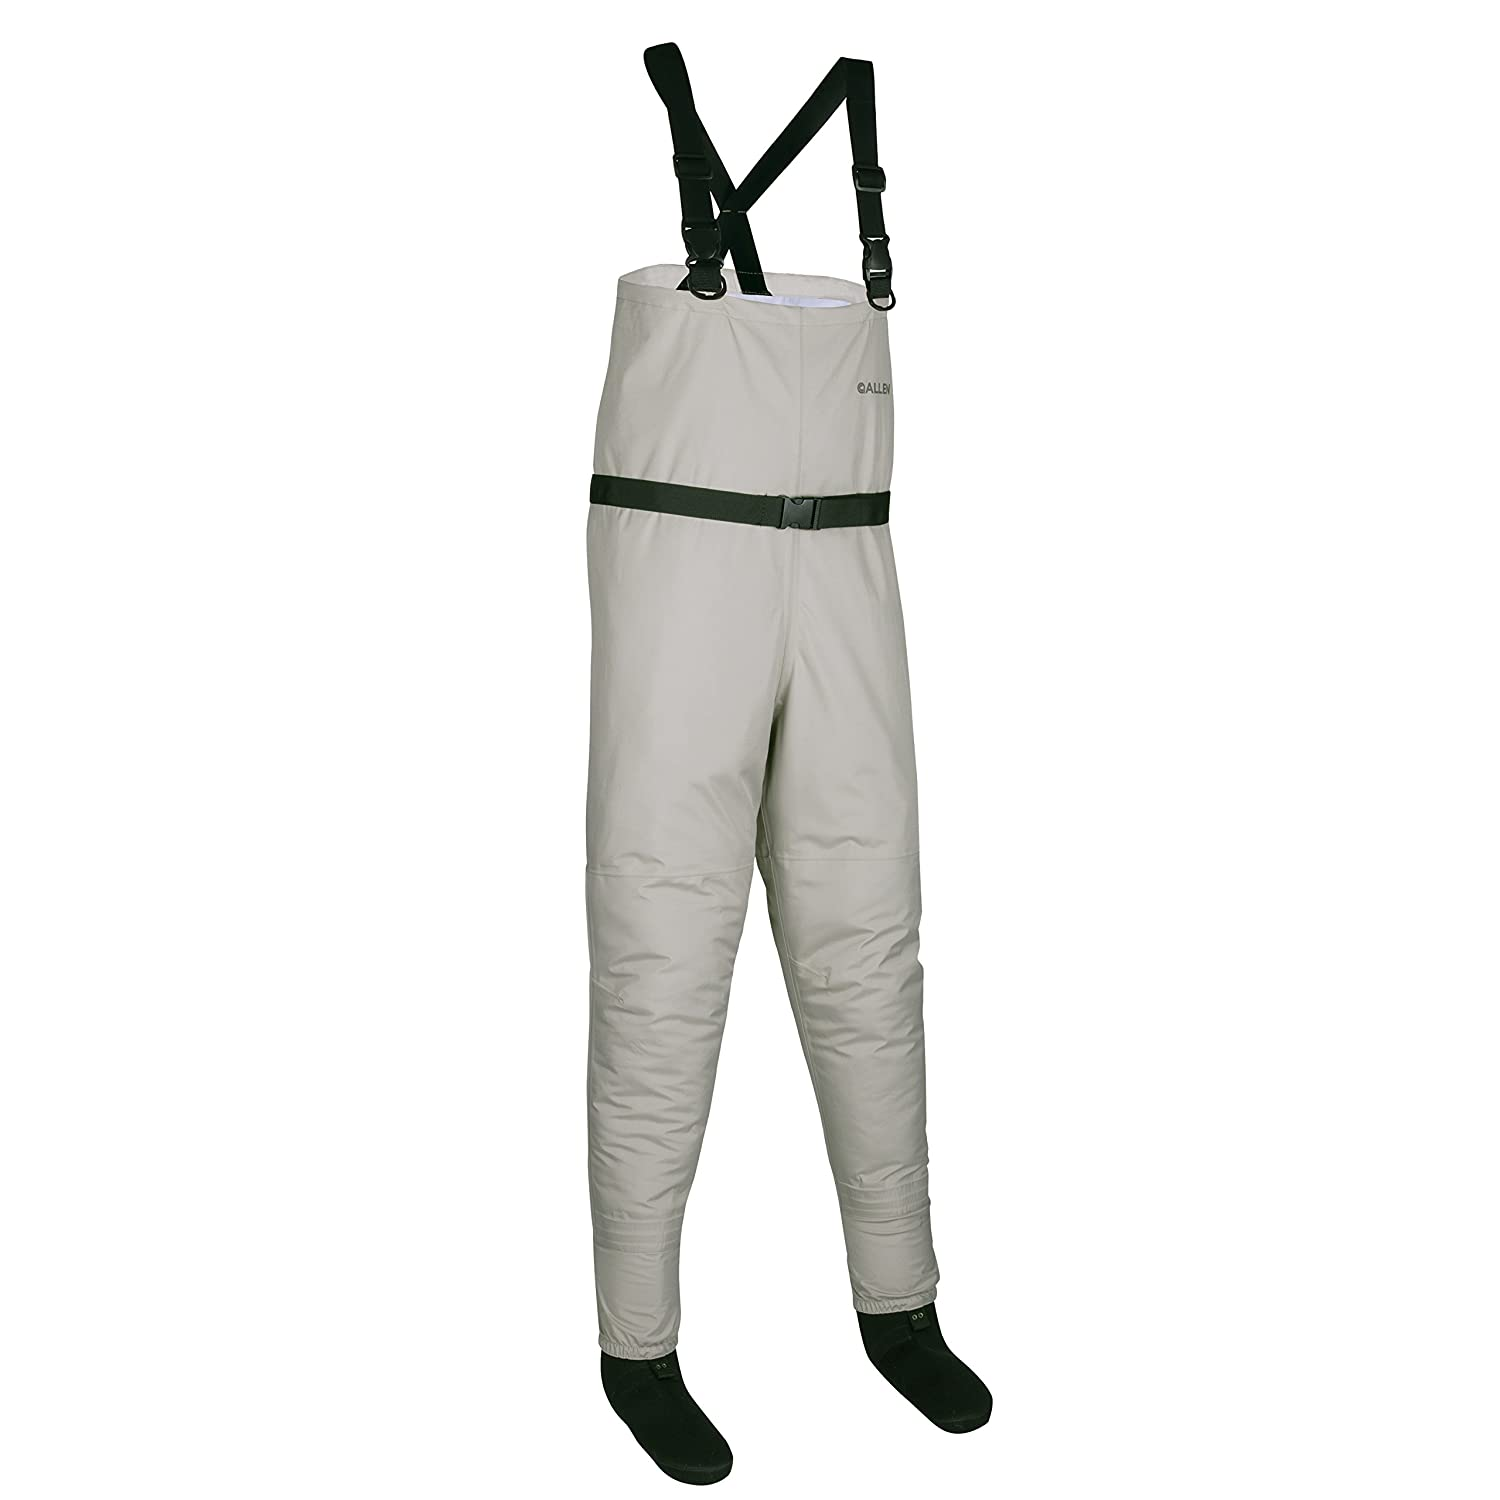 Image of Allen Antero Breathable Stockingfoot Waders